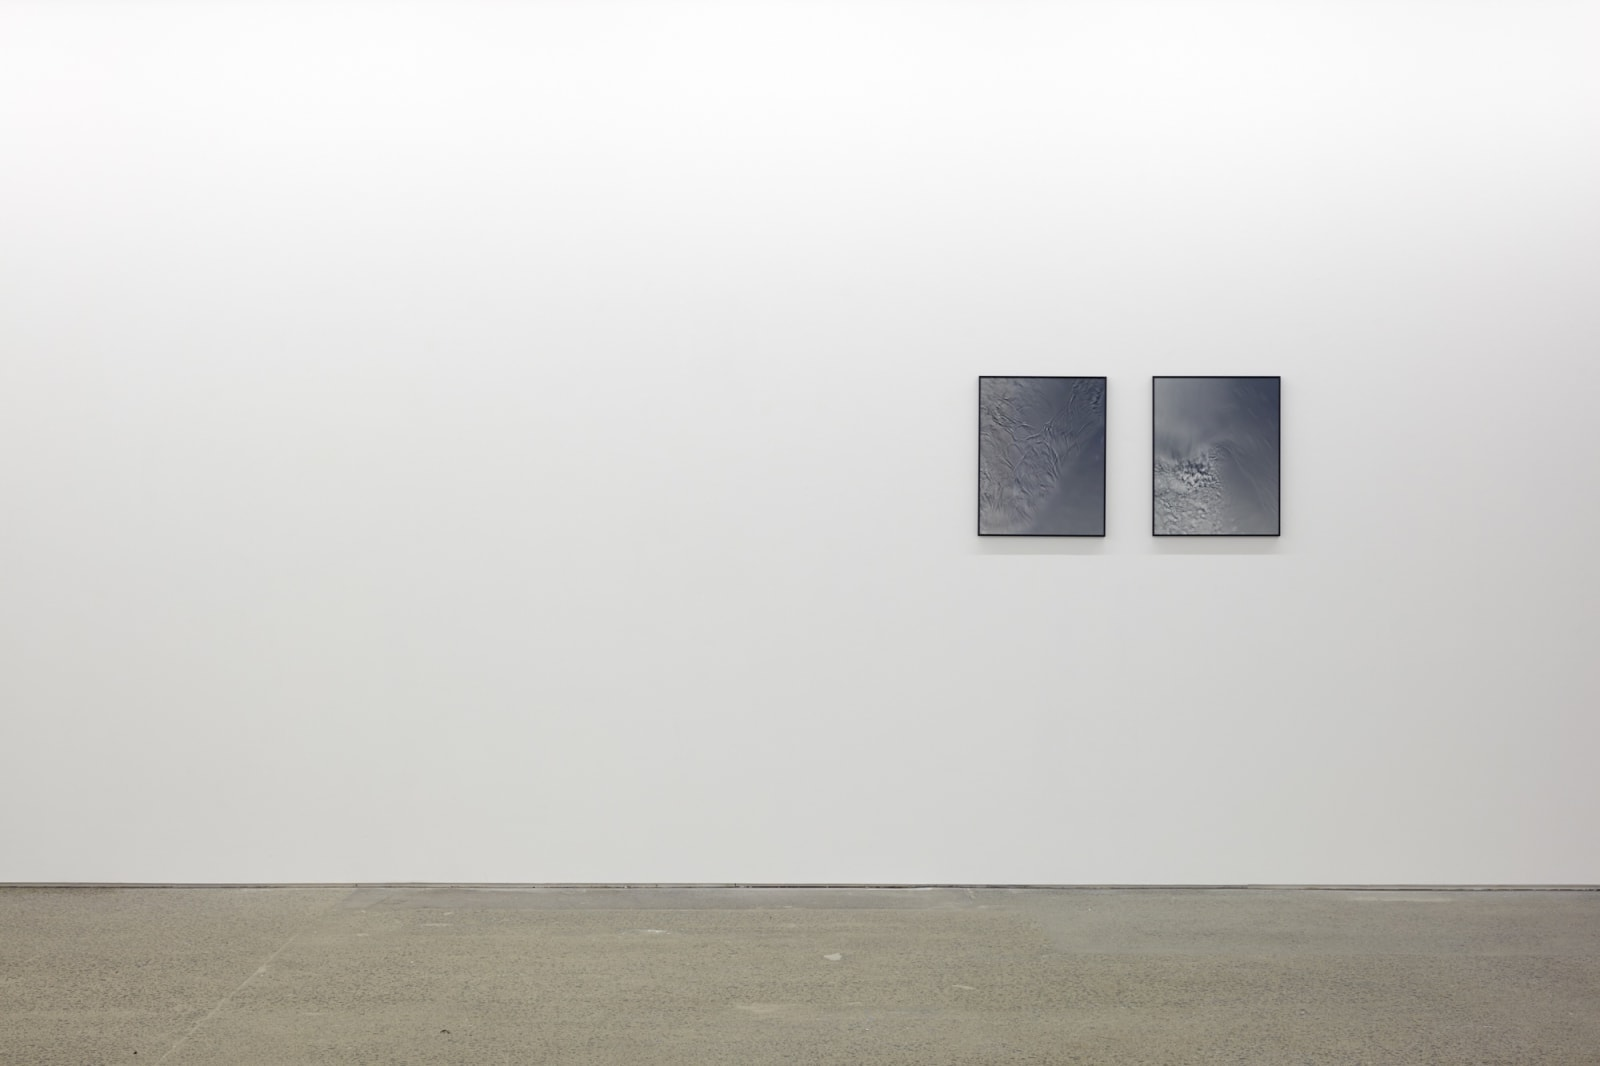 Installation View, Open Surface